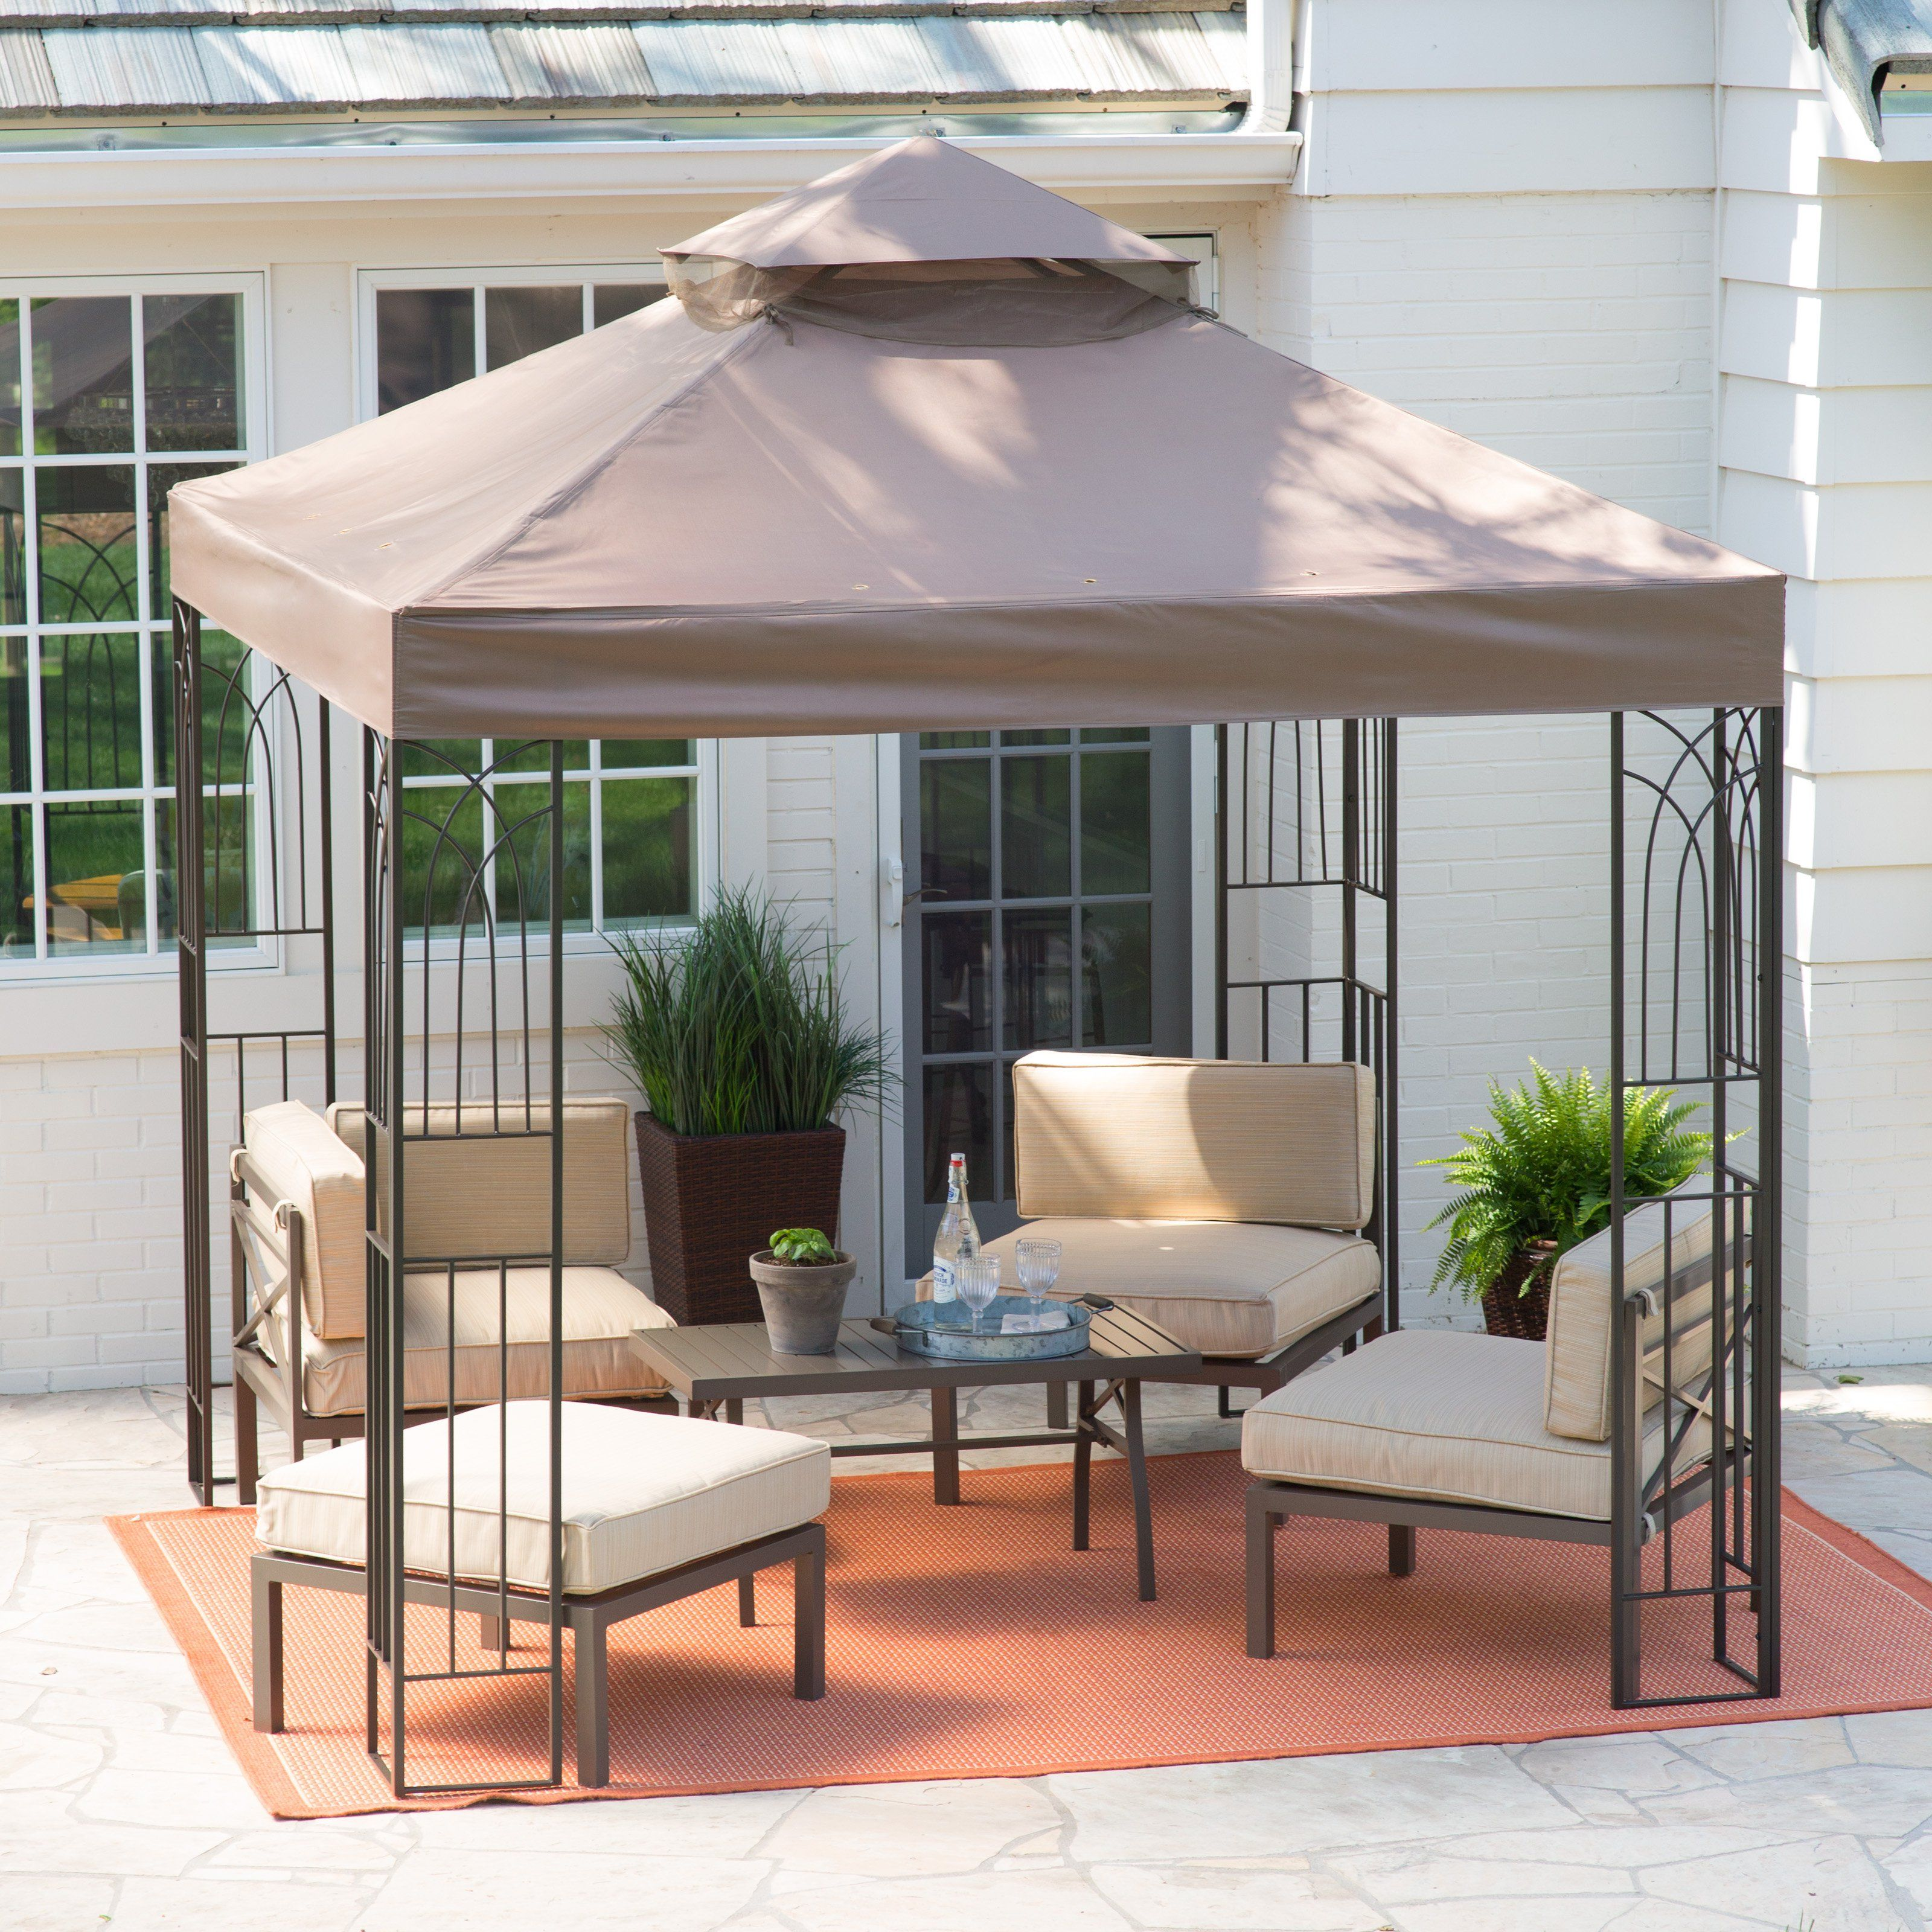 living accents 10 by 12 gazebo instructions